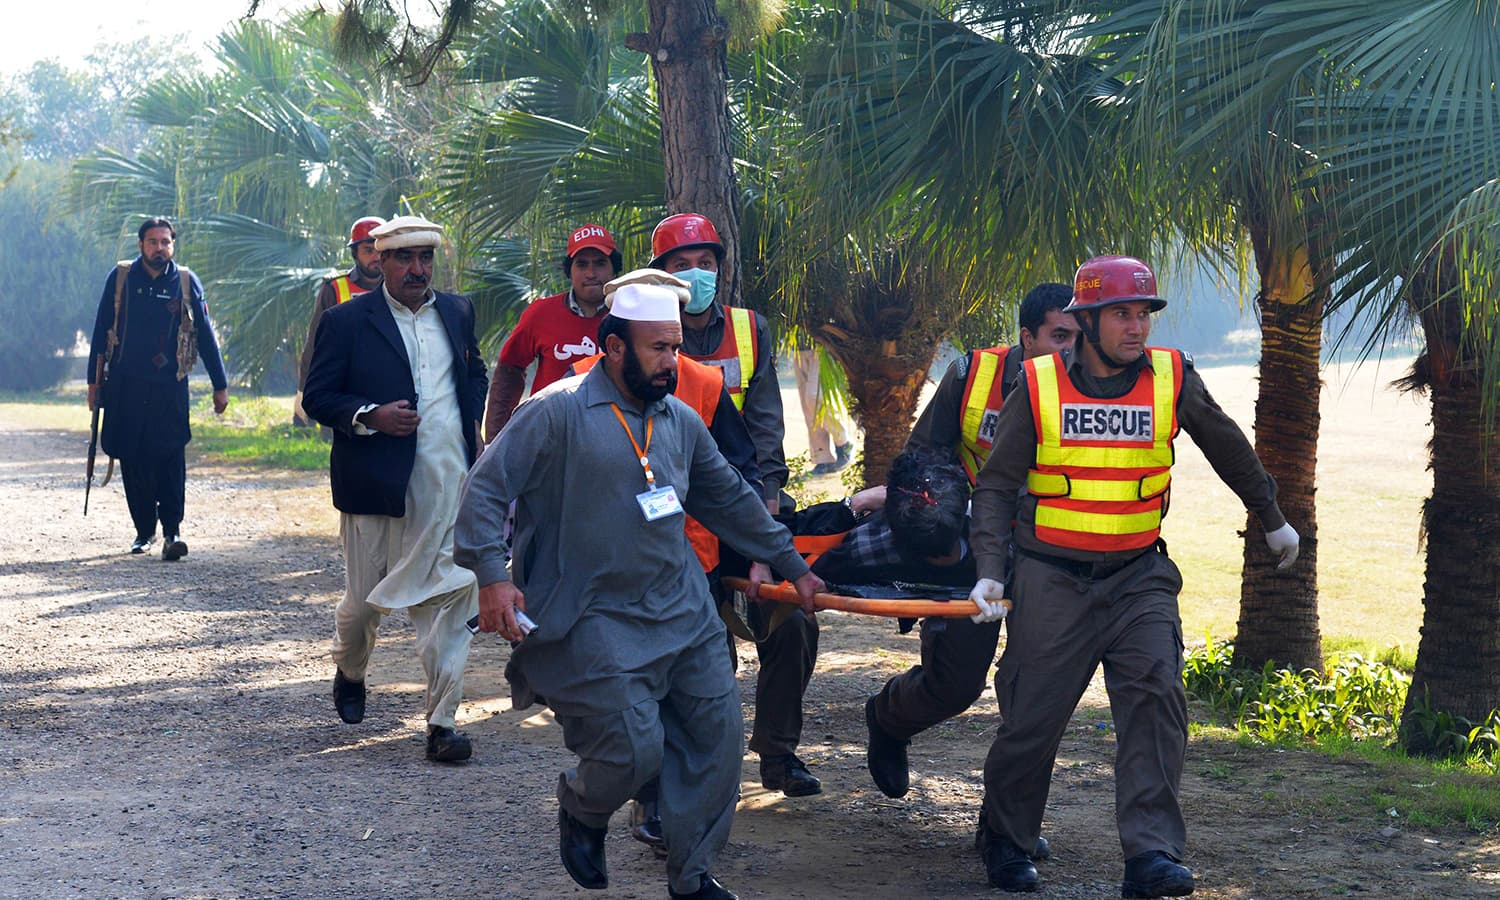 Pakistani rescue personnel carry a victim at Bacha Khan university following an attack by militants in Charsadda. -AFP